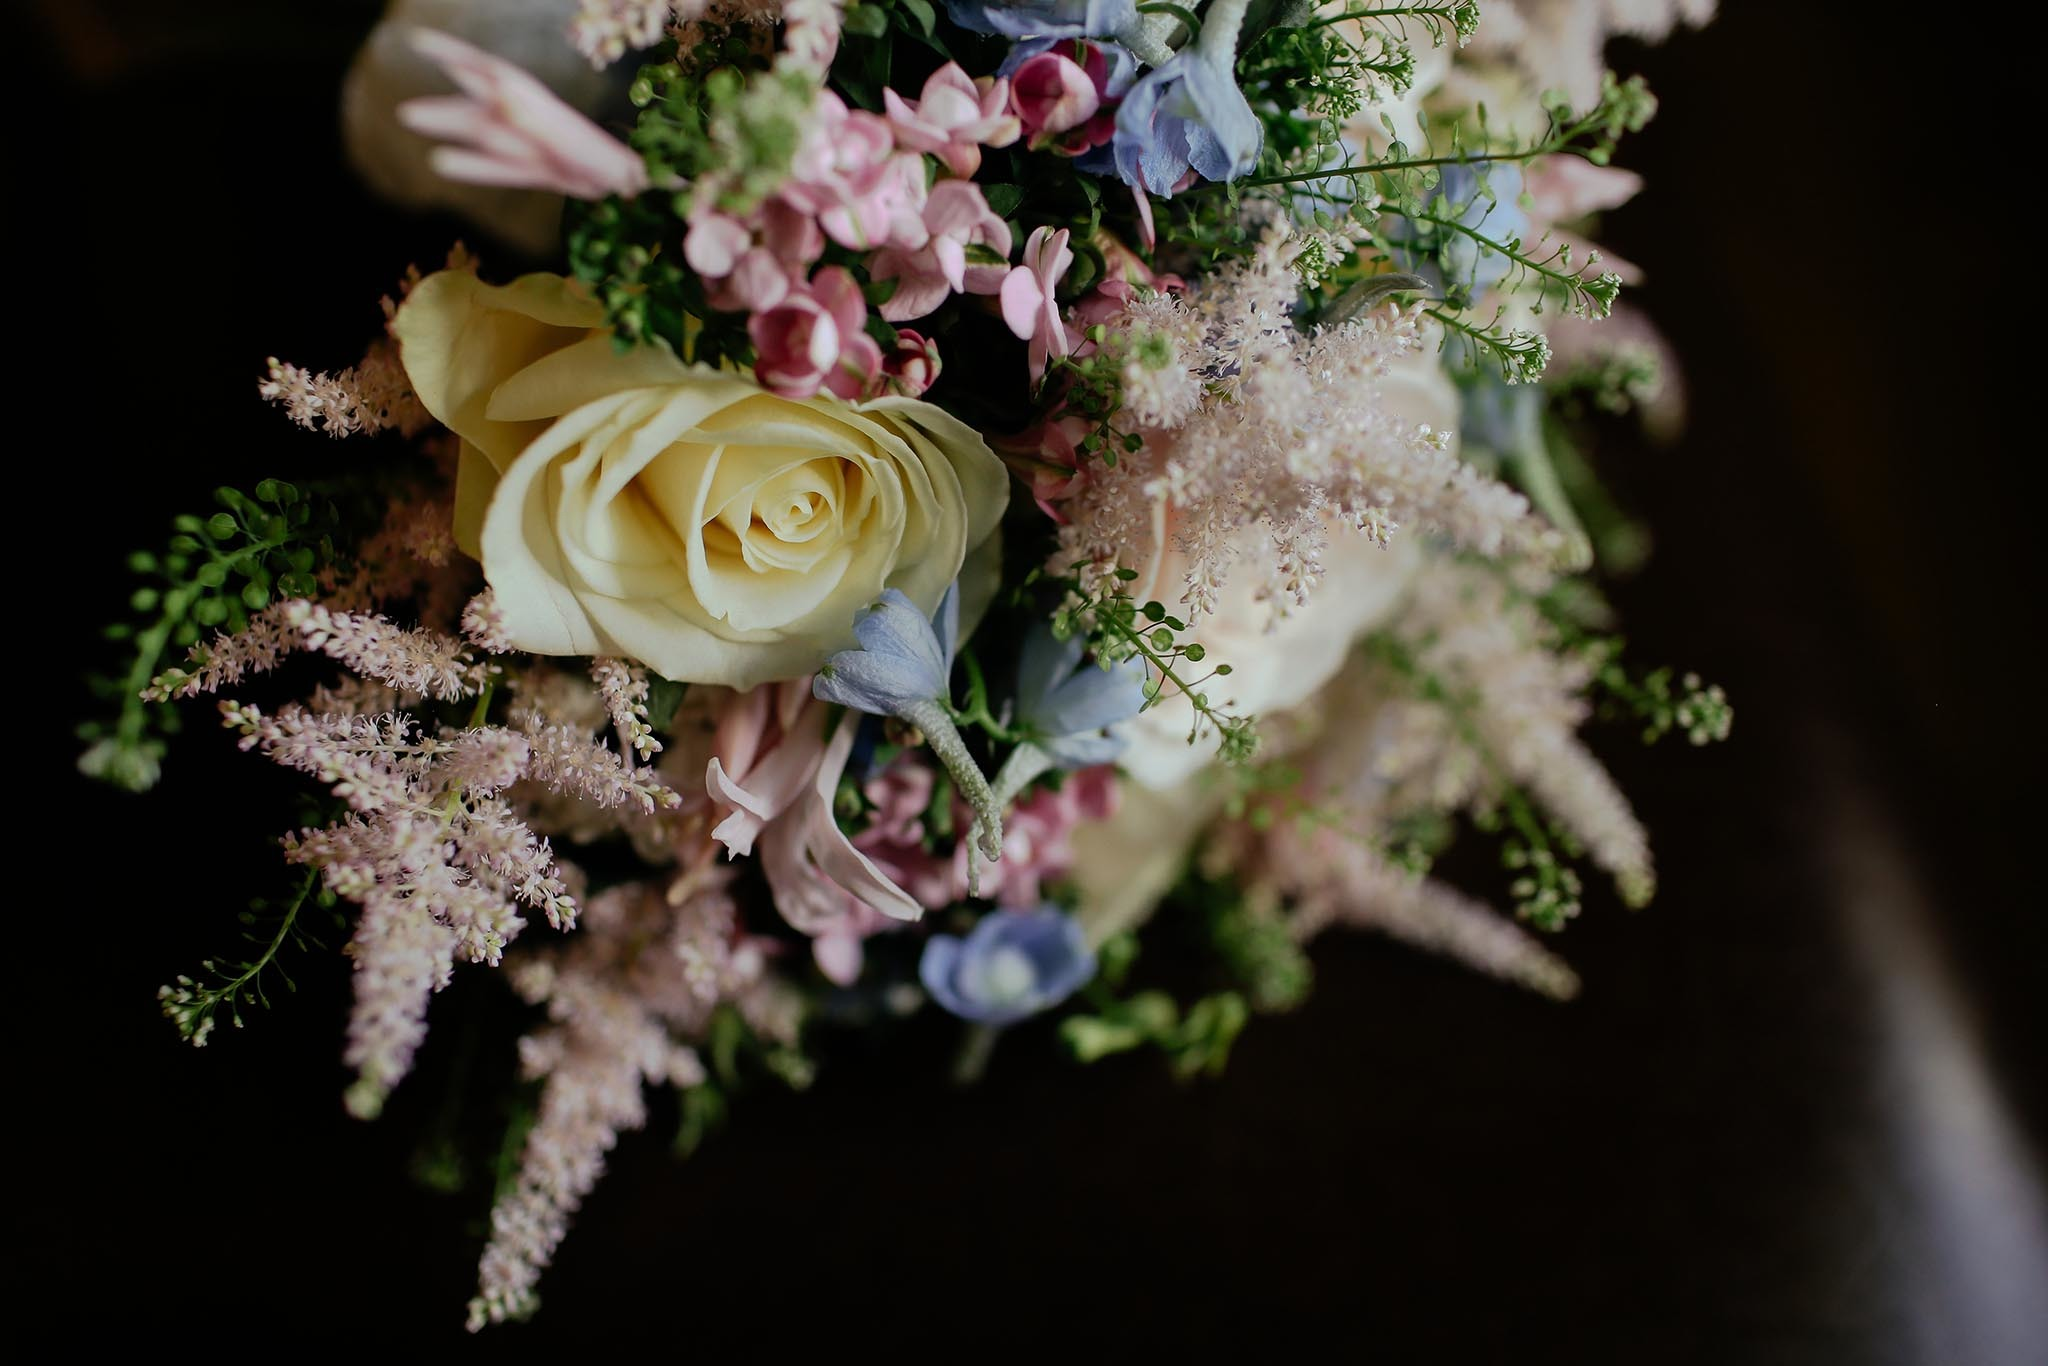 15 best flower shops in miami to buy bouquets and more bouquet izmirmasajfo